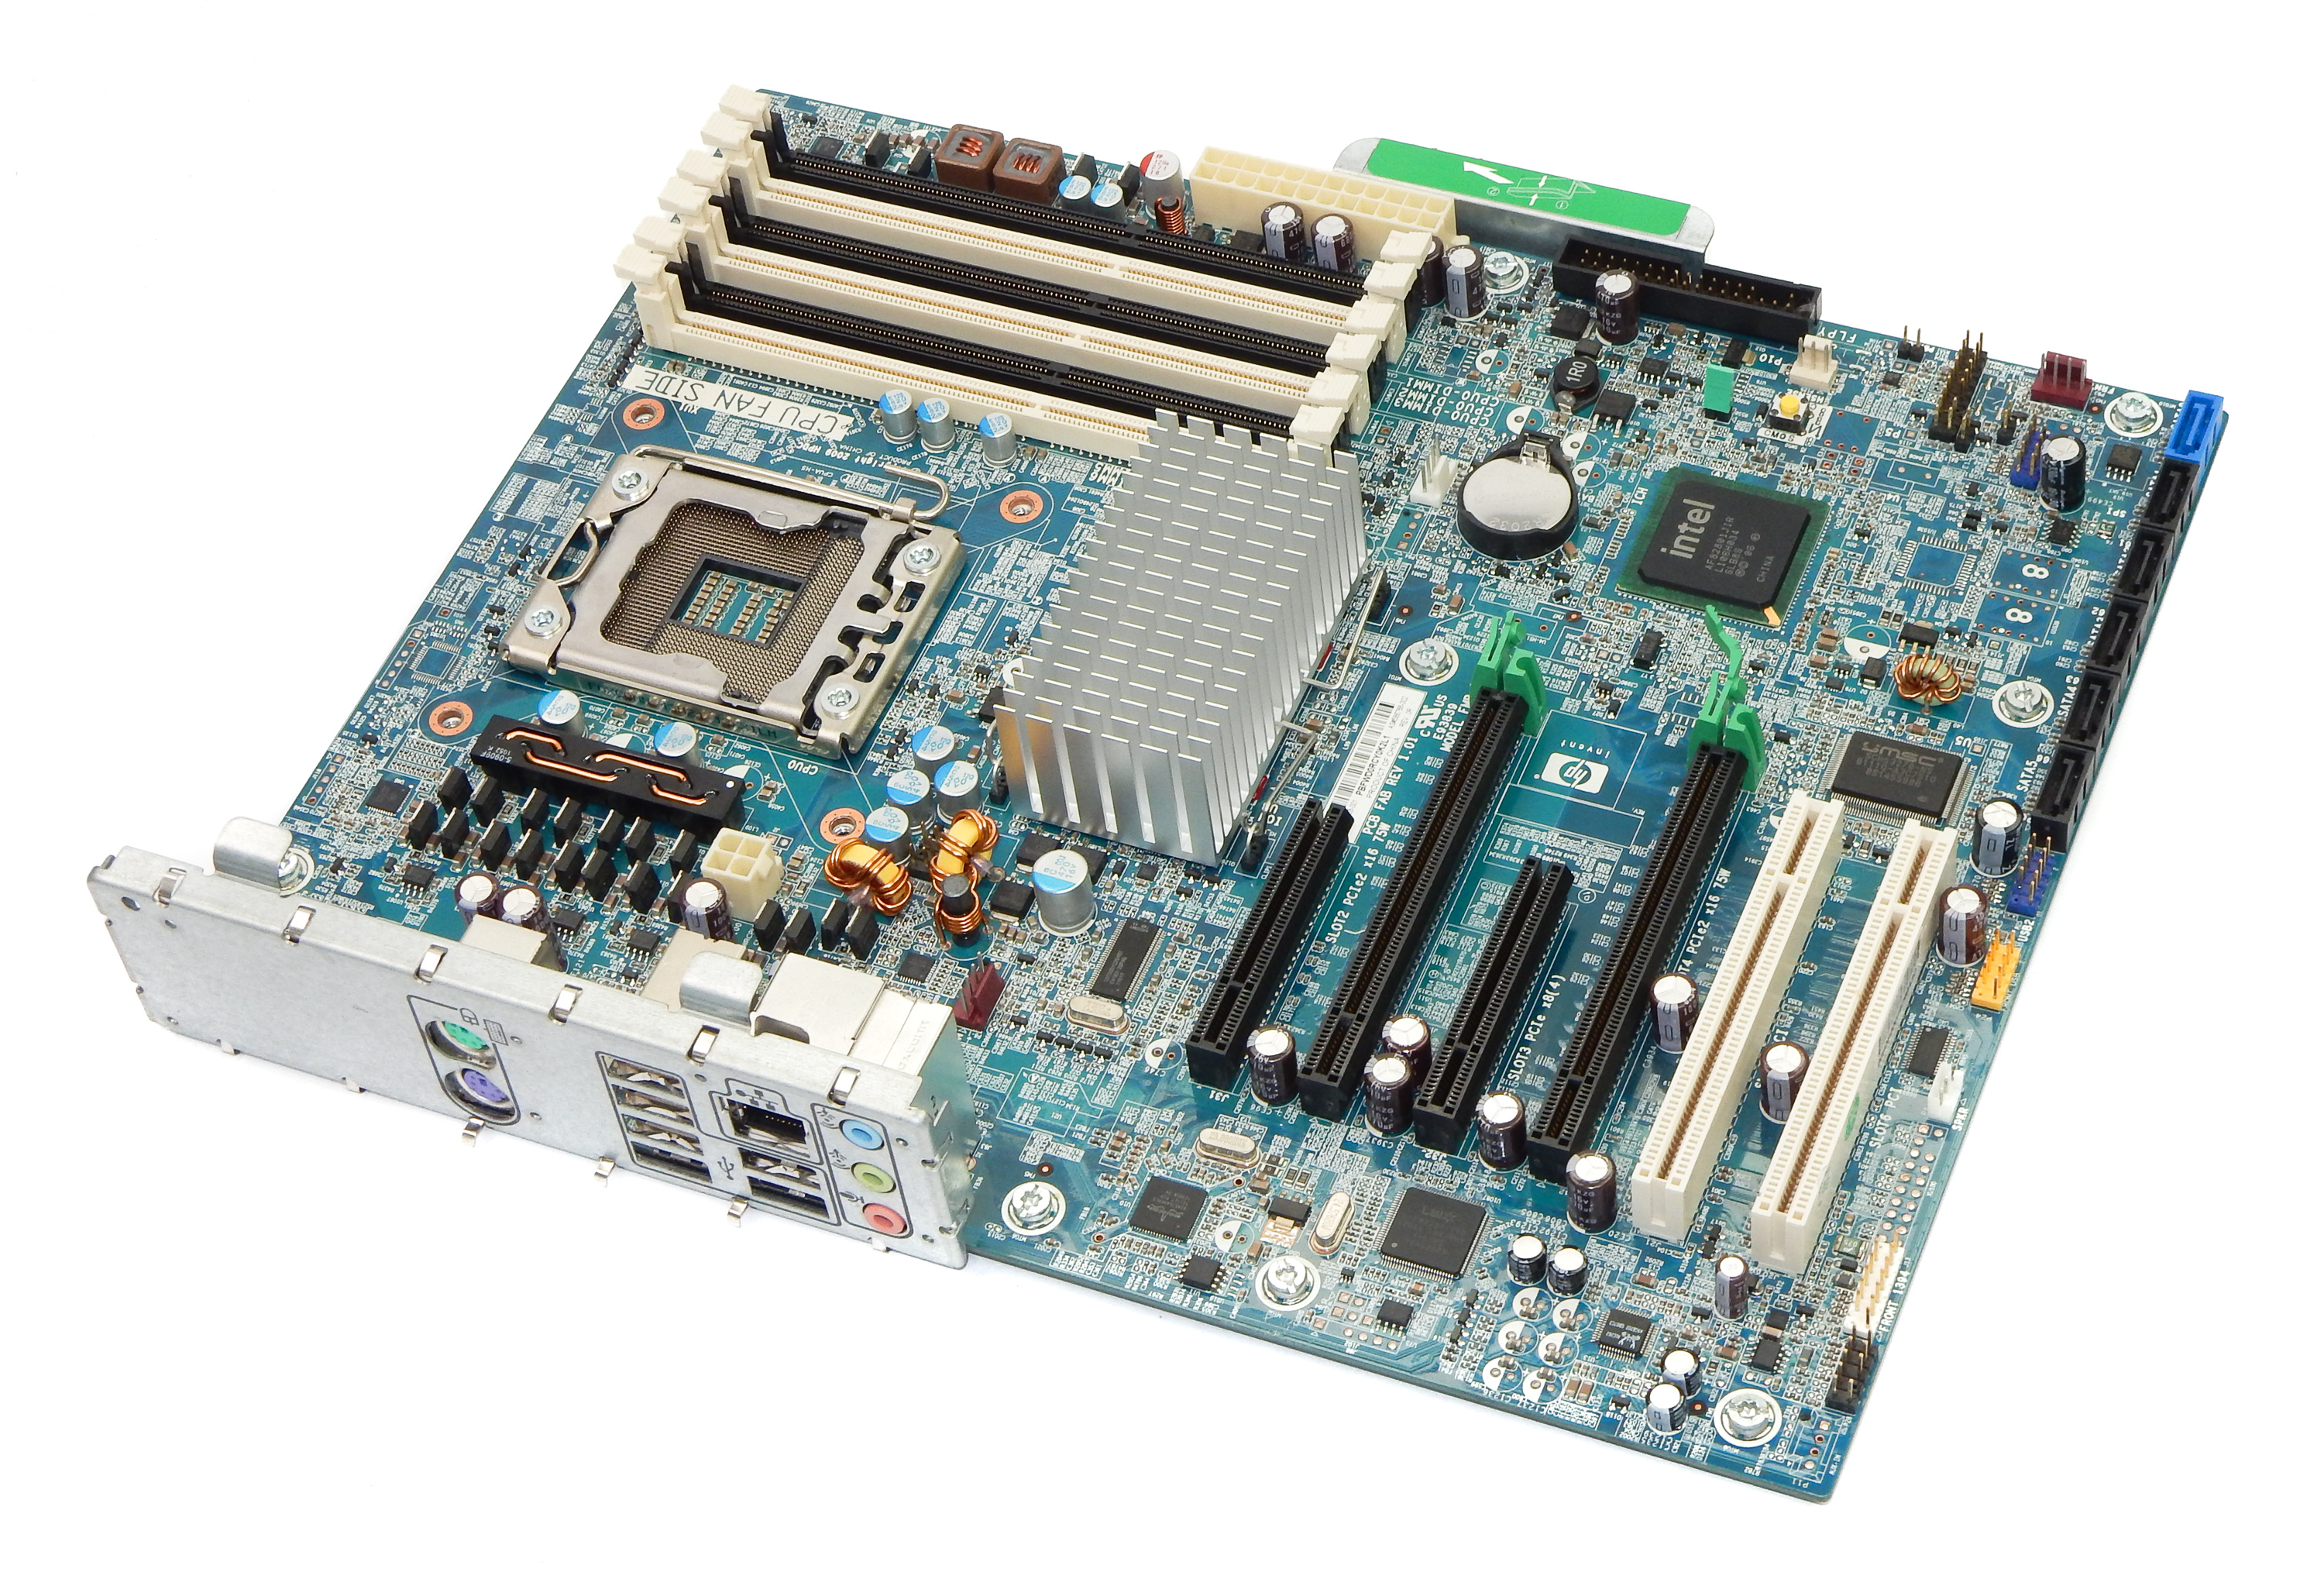 HP 586968-001 Z400 Workstation LGA1366 Motherboard /w Tray